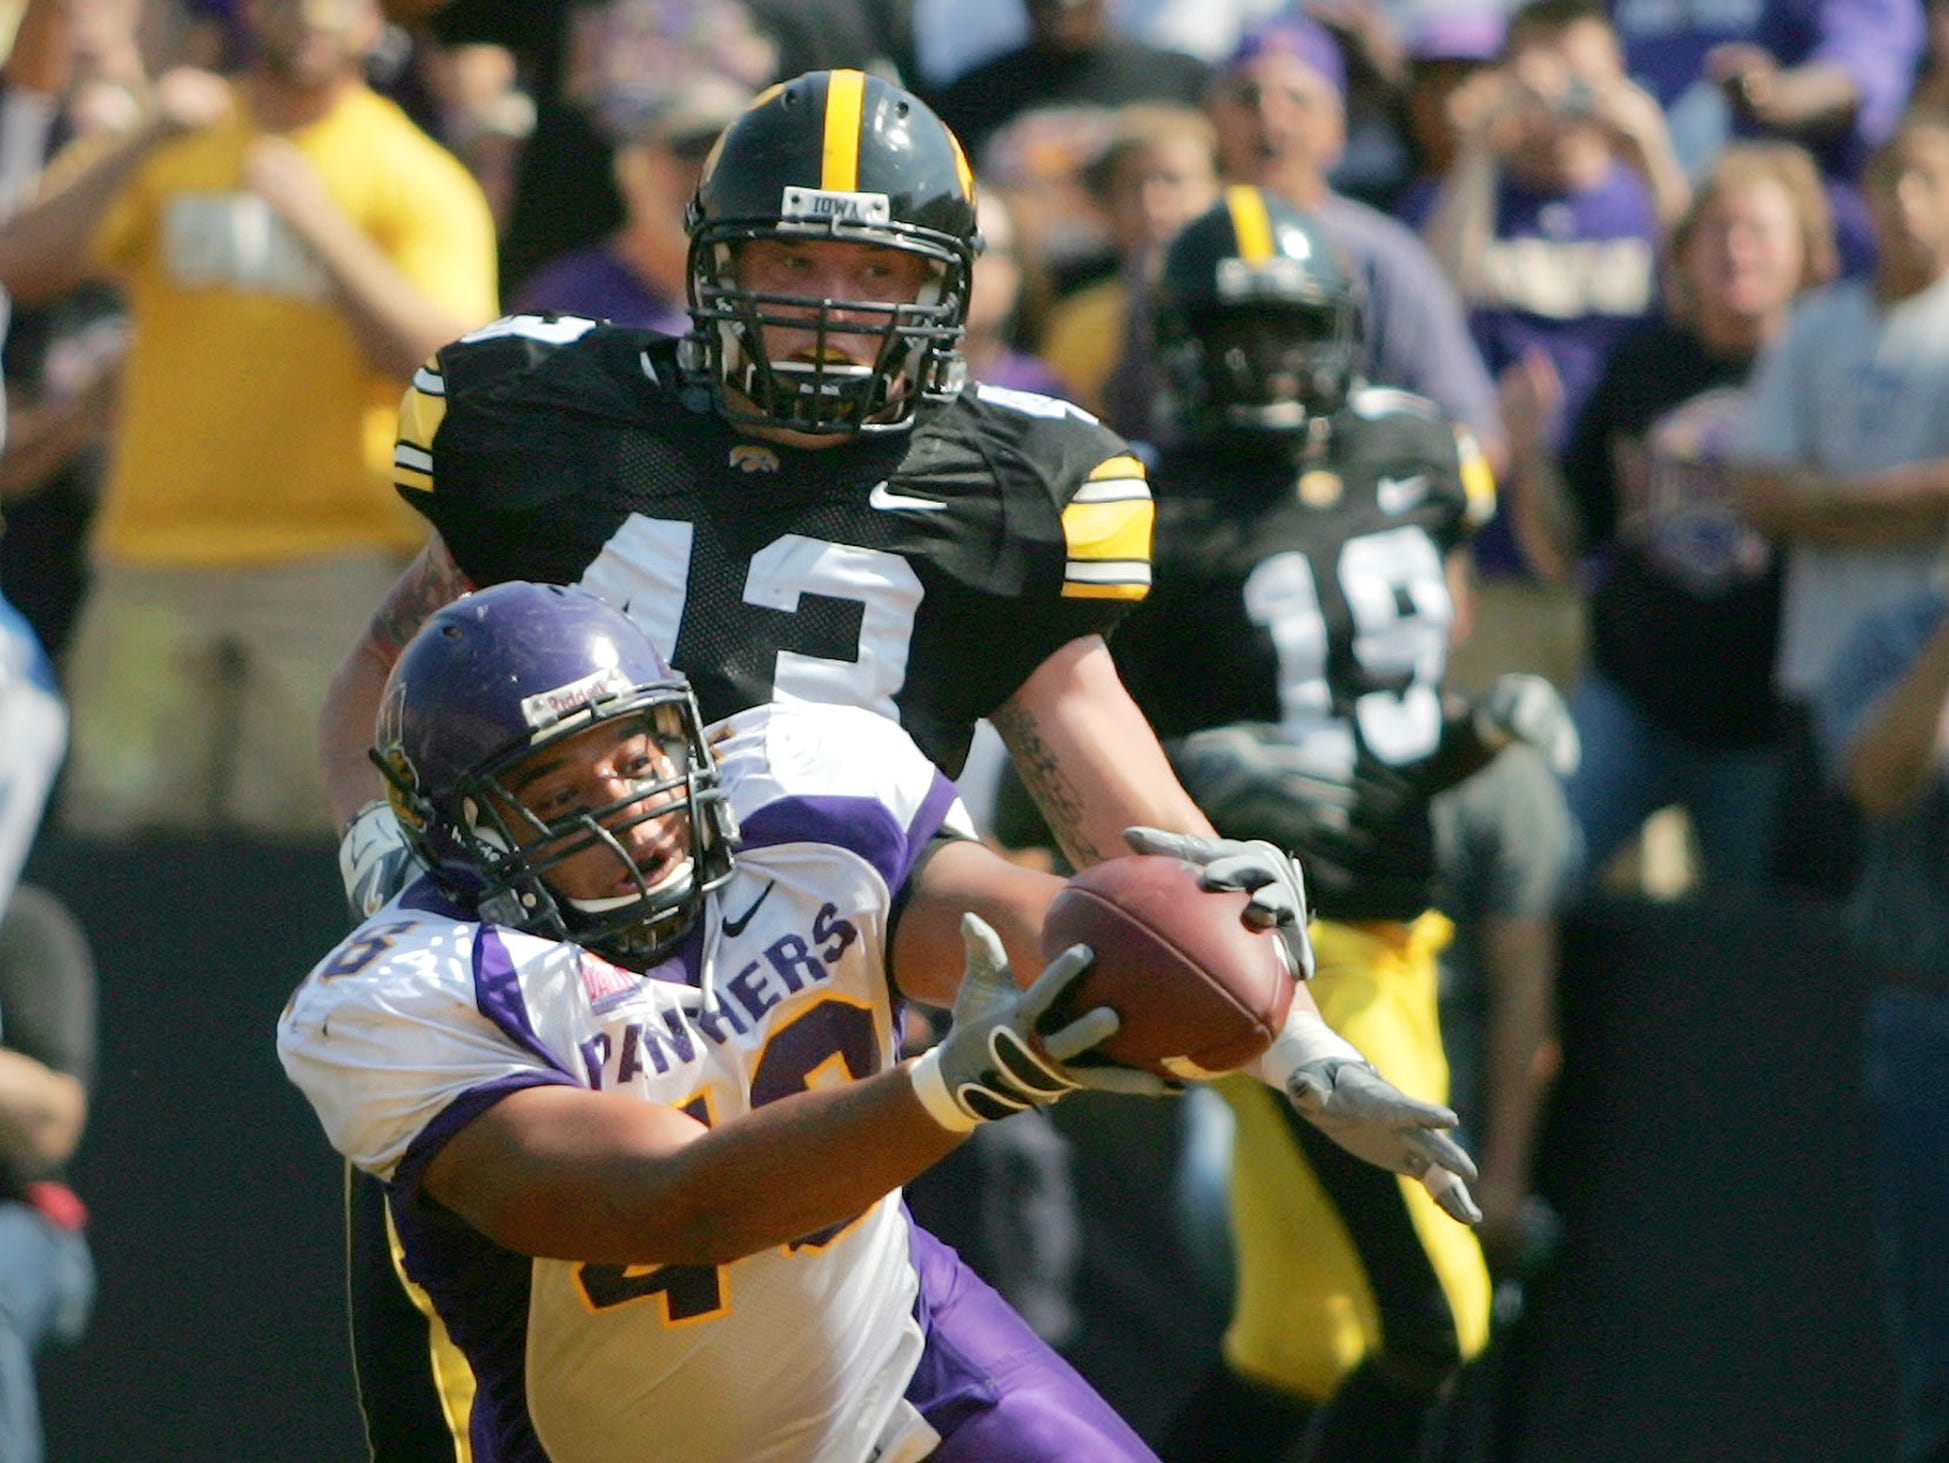 Northern Iowa tight end Ryan Mahaffey (48) catches a second quarter touchdown in front of Iowa linebacker Pat Angerer (43) to take a 10-3 lead Sept. 5, 2009 in Iowa City.